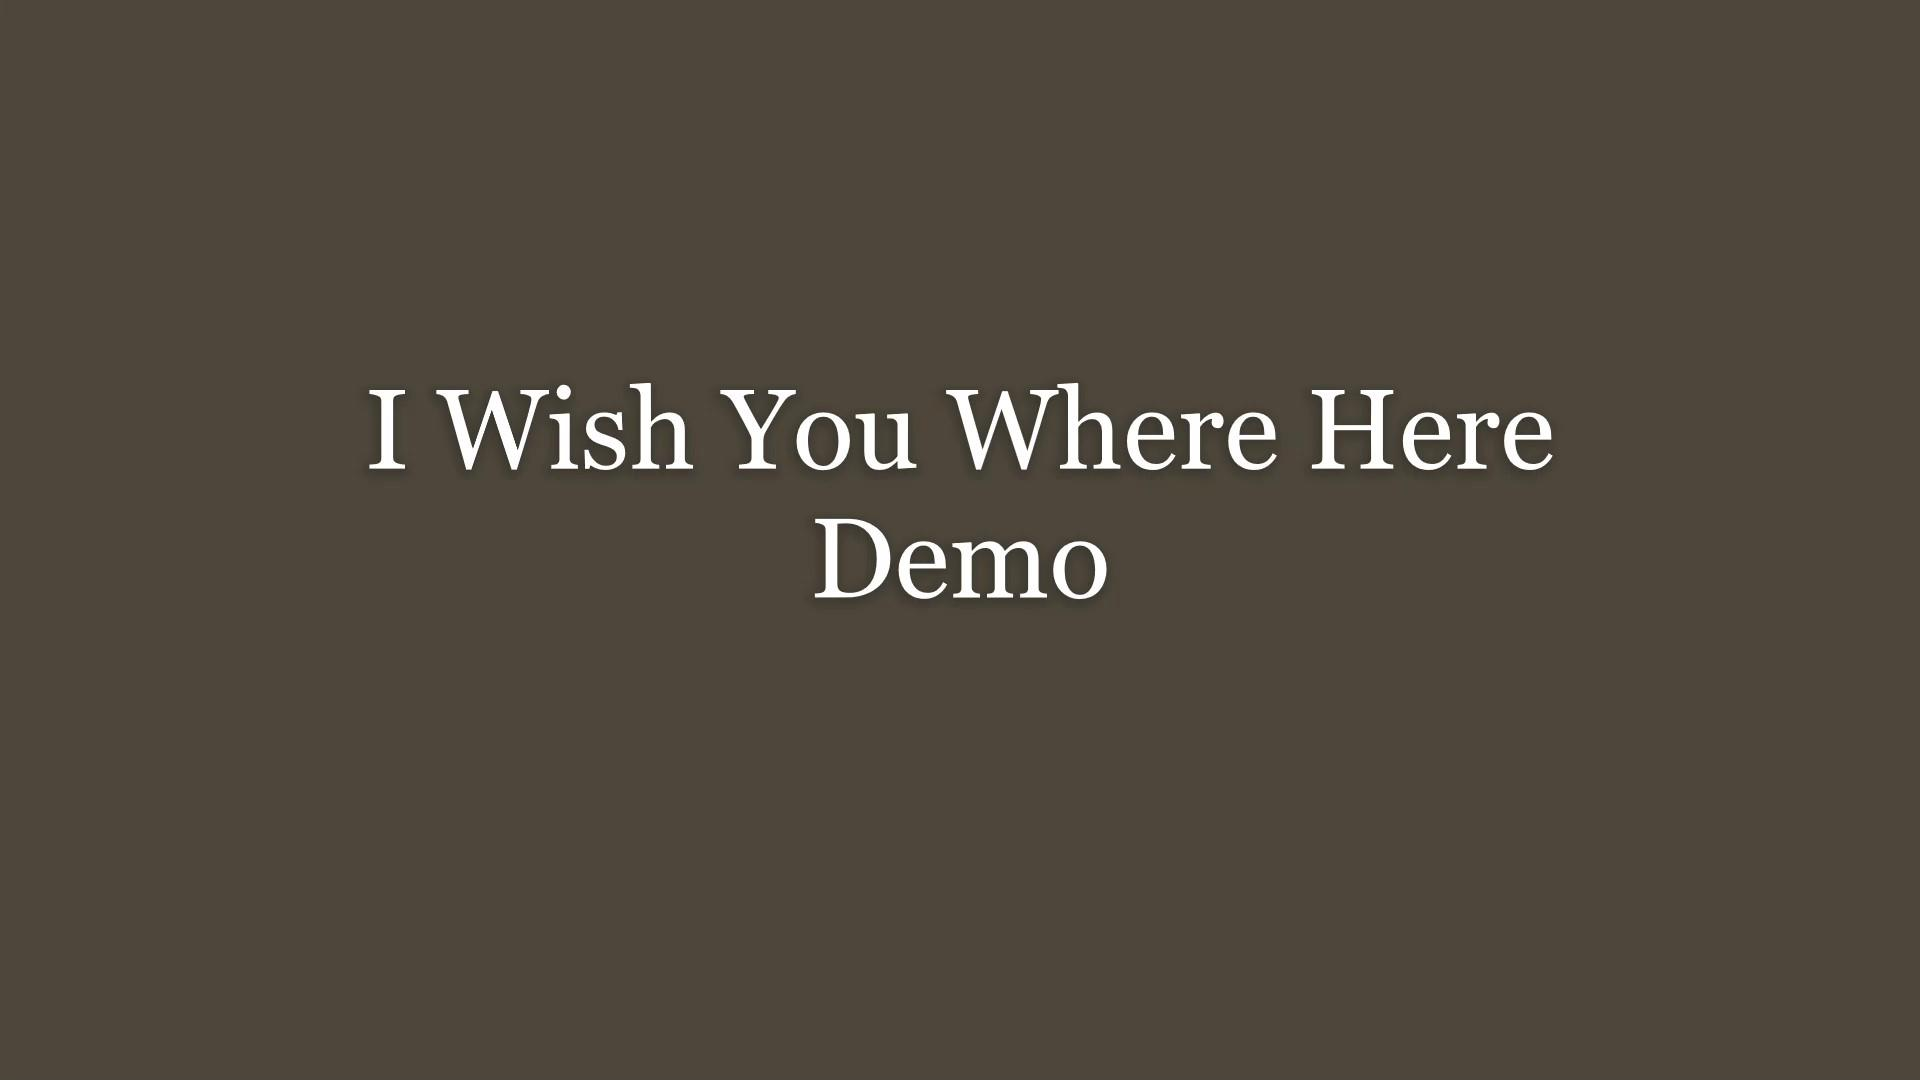 Standbild I Wish You Where Here Demo